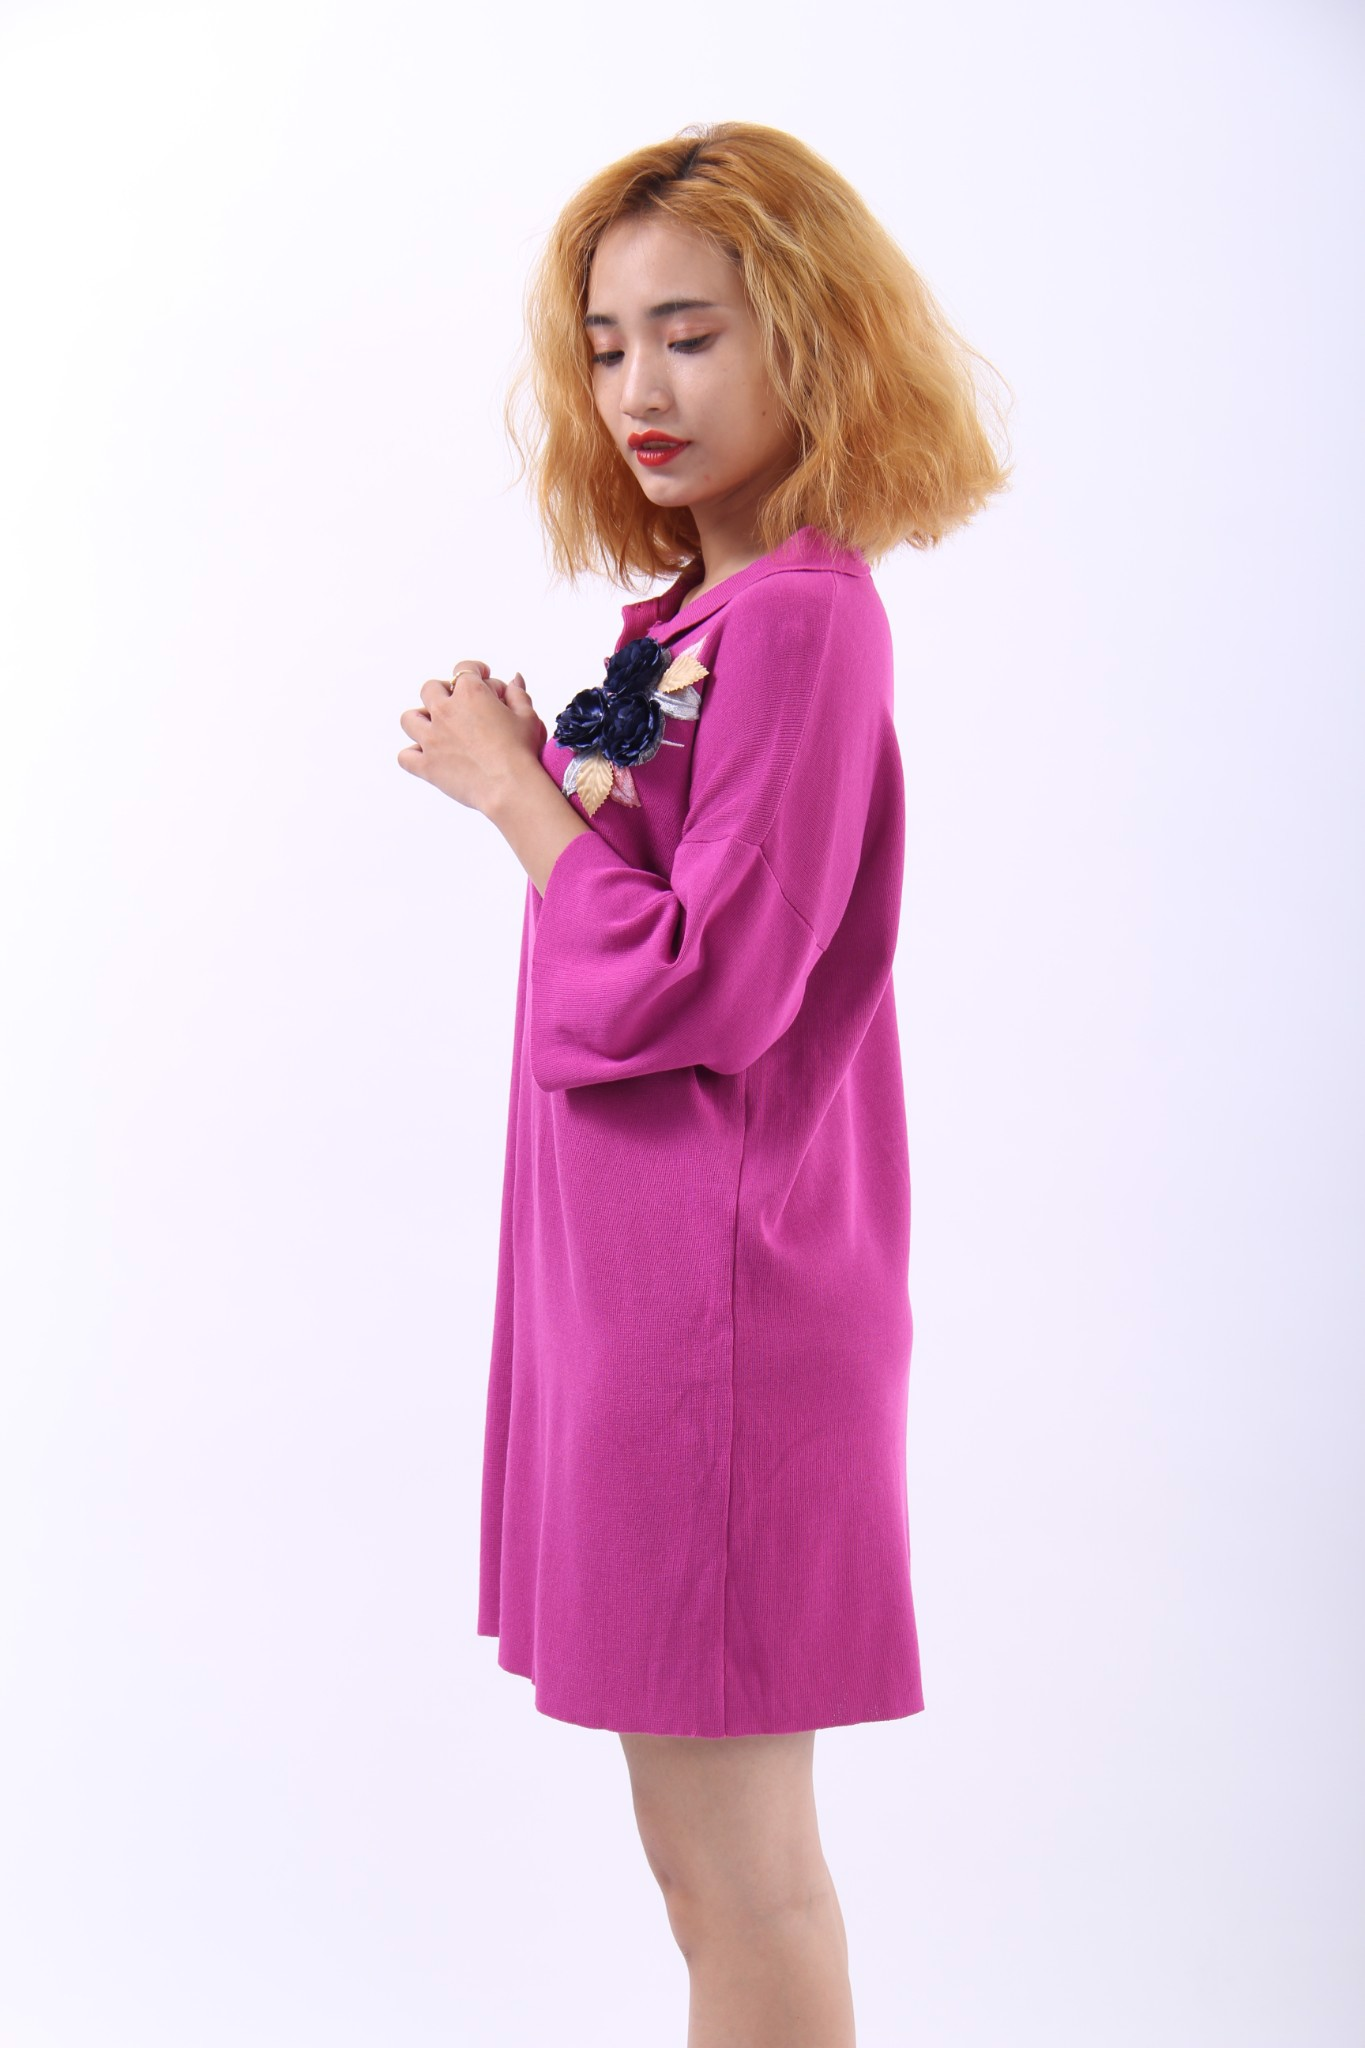 Rosa pink polo dress